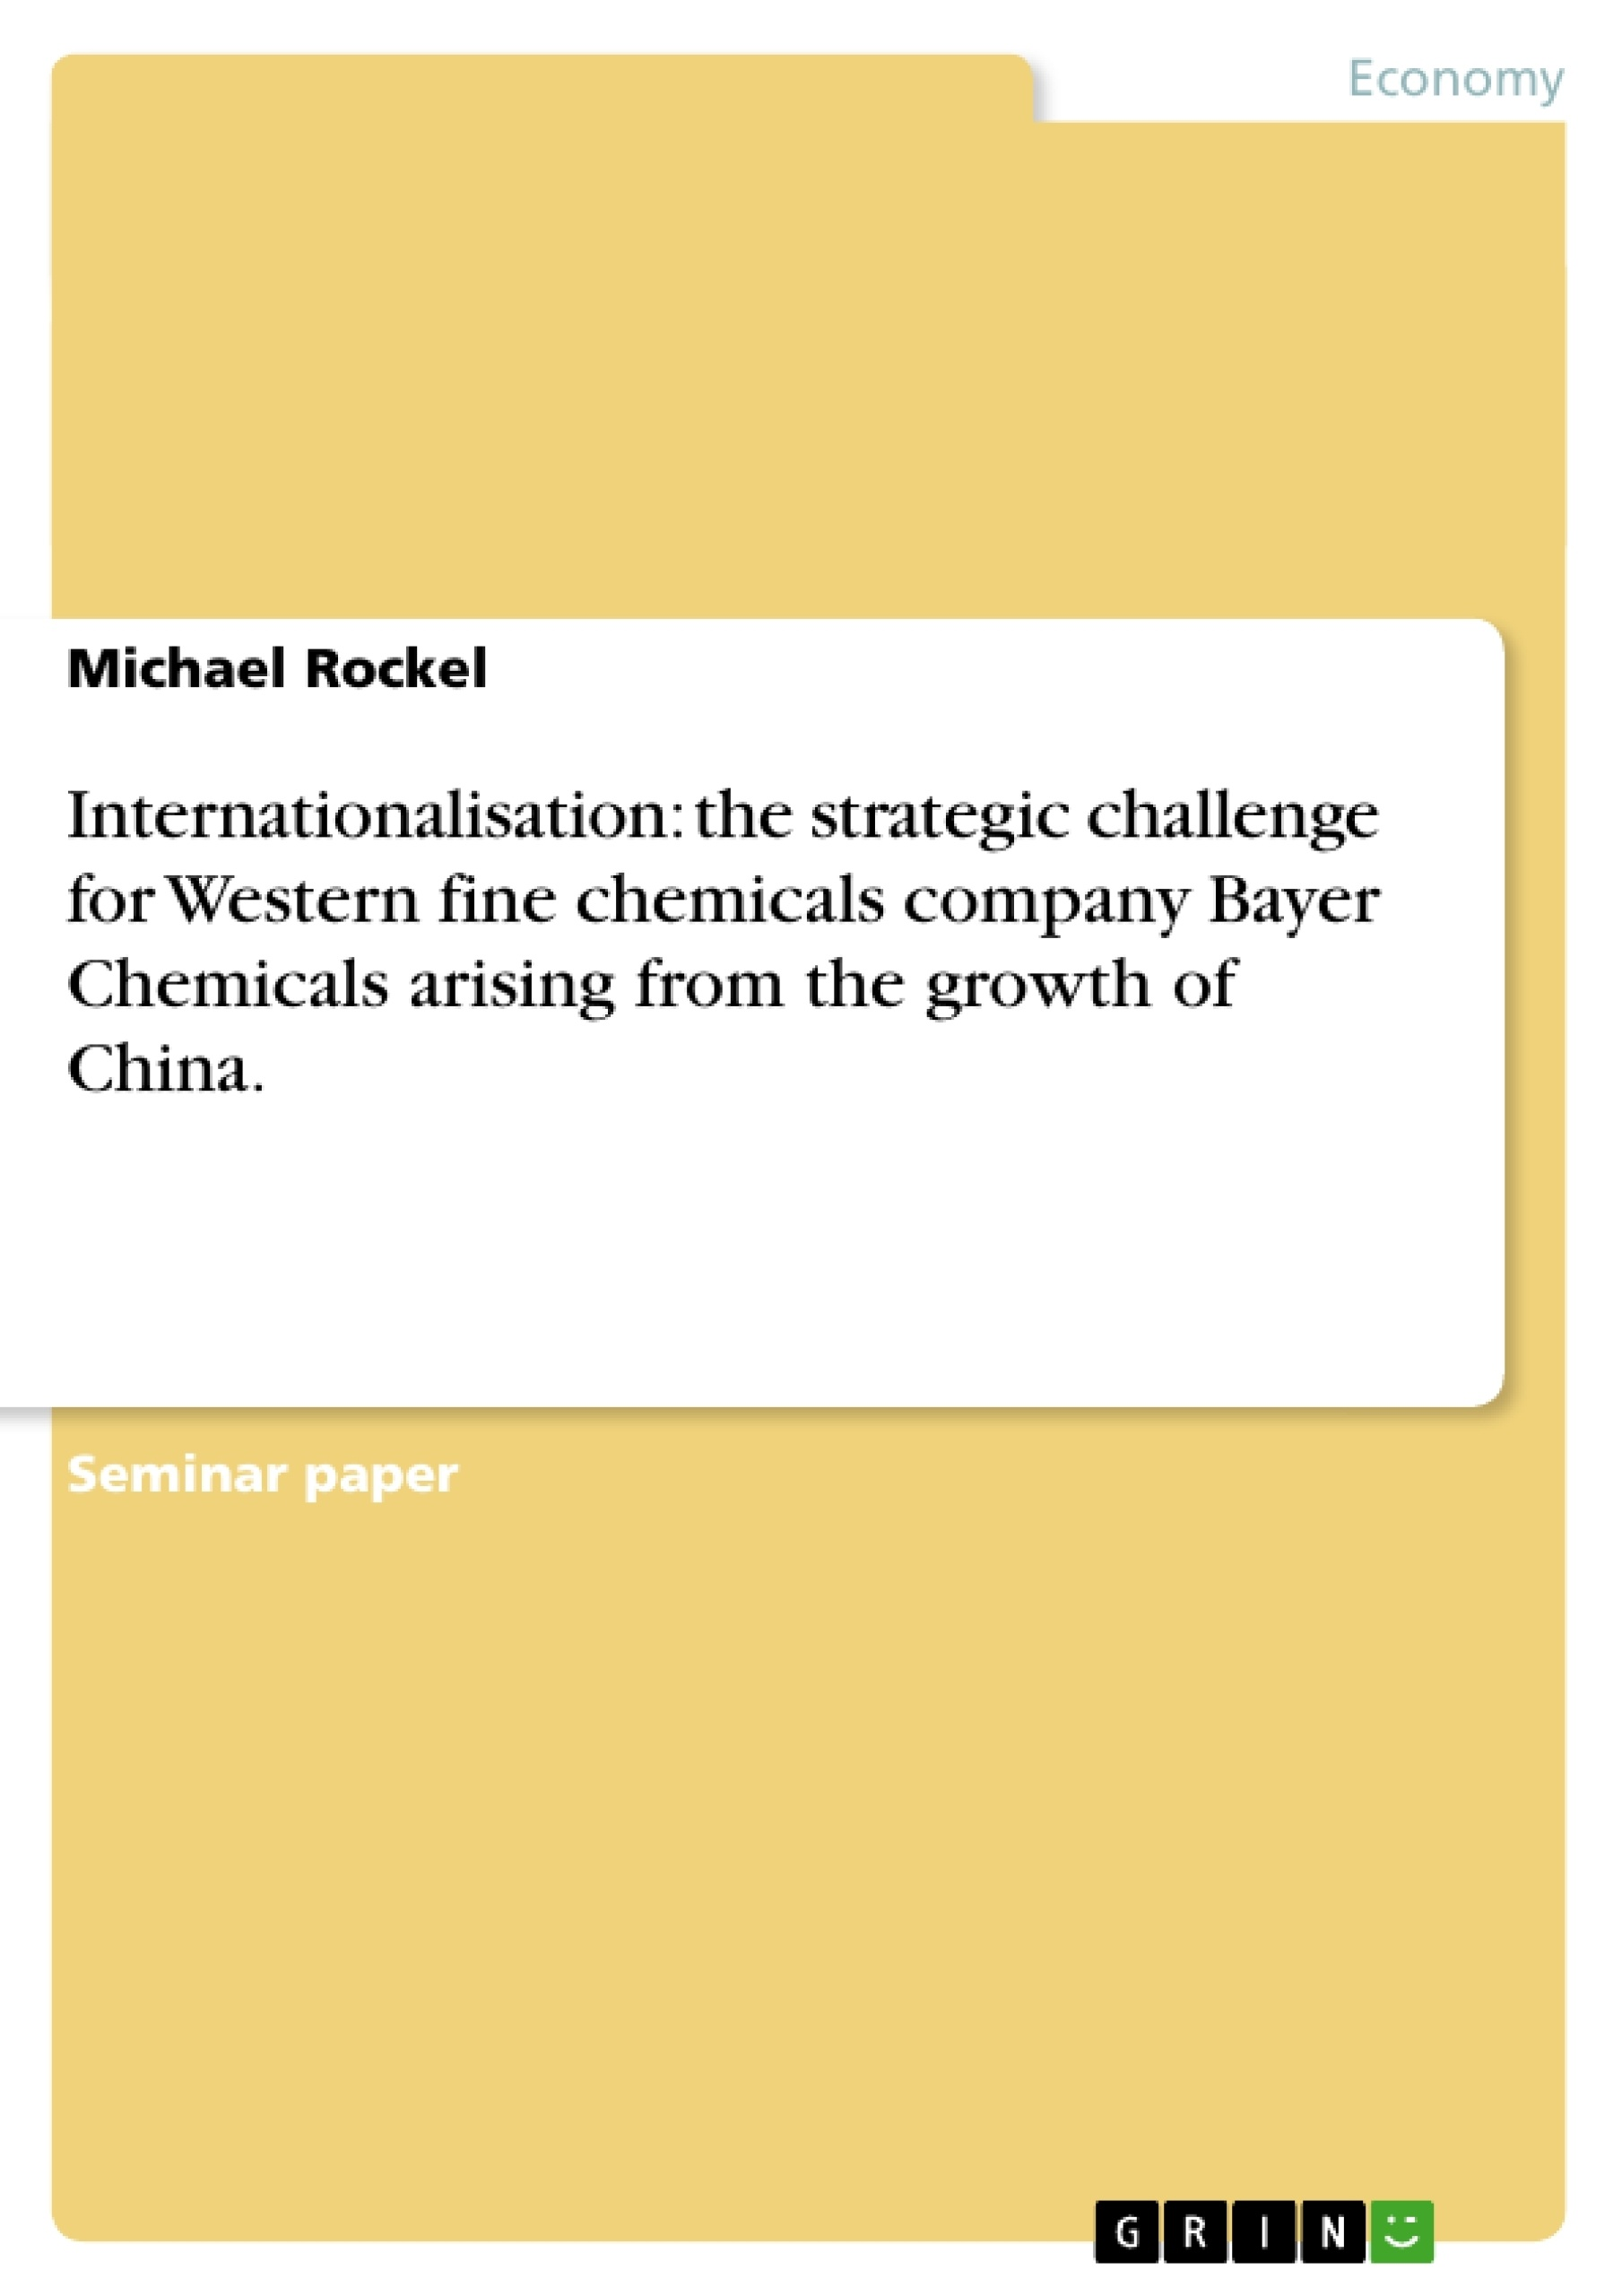 Title: Internationalisation: the strategic challenge for Western fine chemicals company Bayer Chemicals arising from the growth of China.